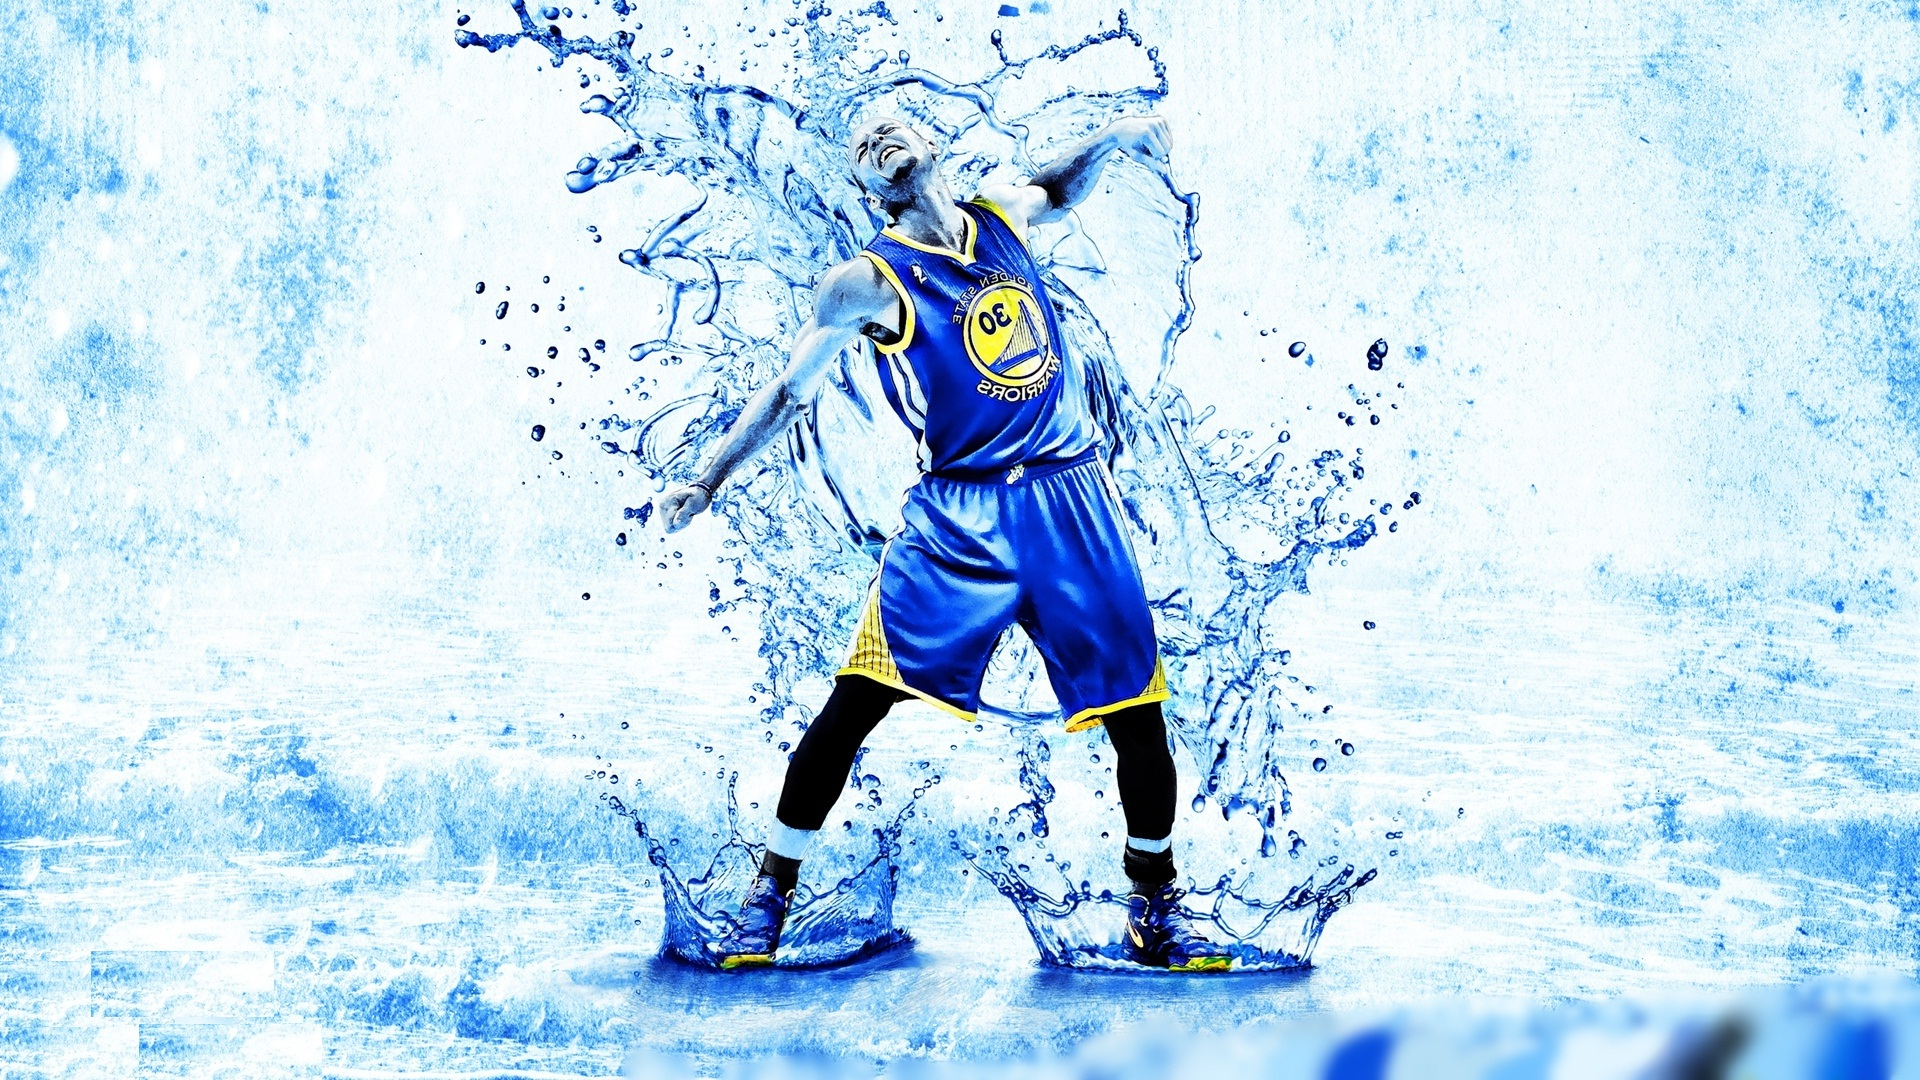 Stephen Curry Laptop Wallpapers by hdwallpapersnewscom 1920x1080